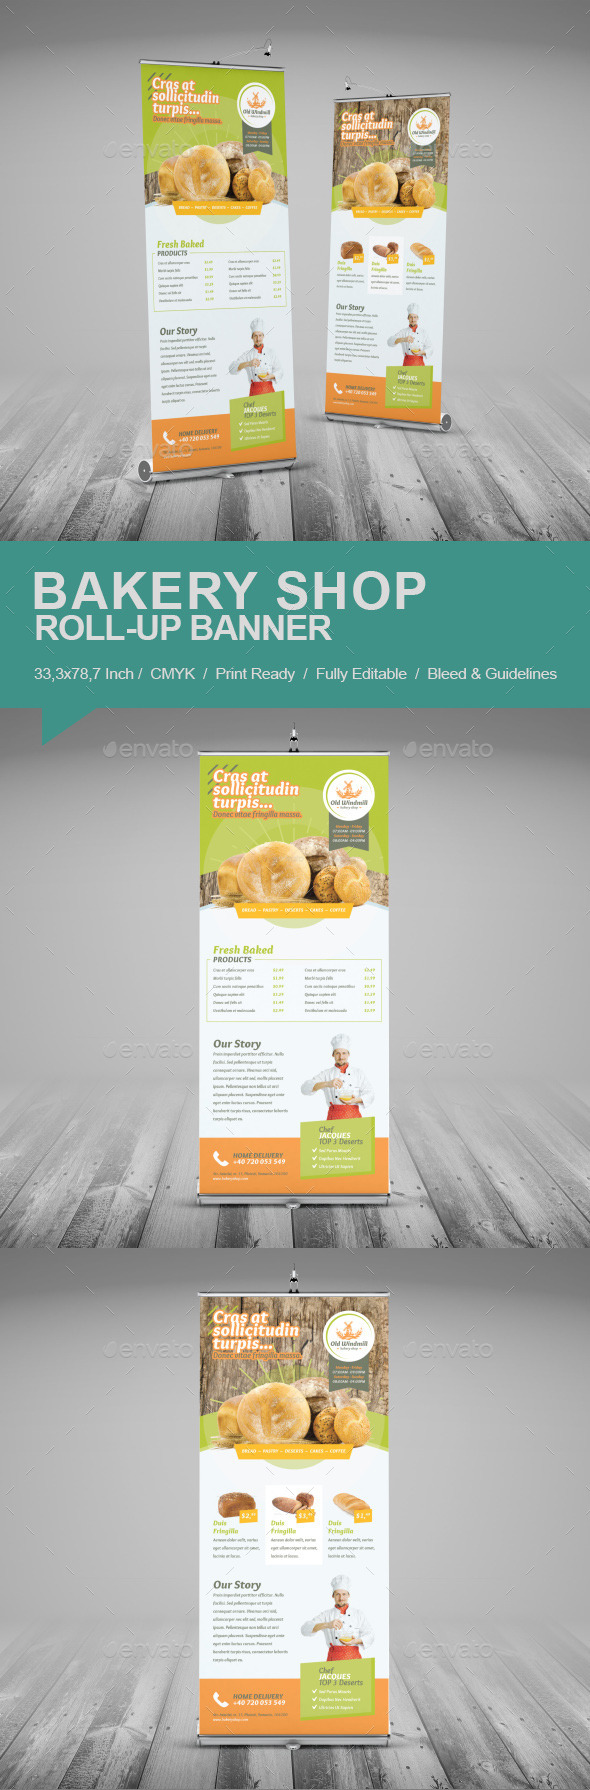 Bakery Shop Roll-Up Banner - Signage Print Templates